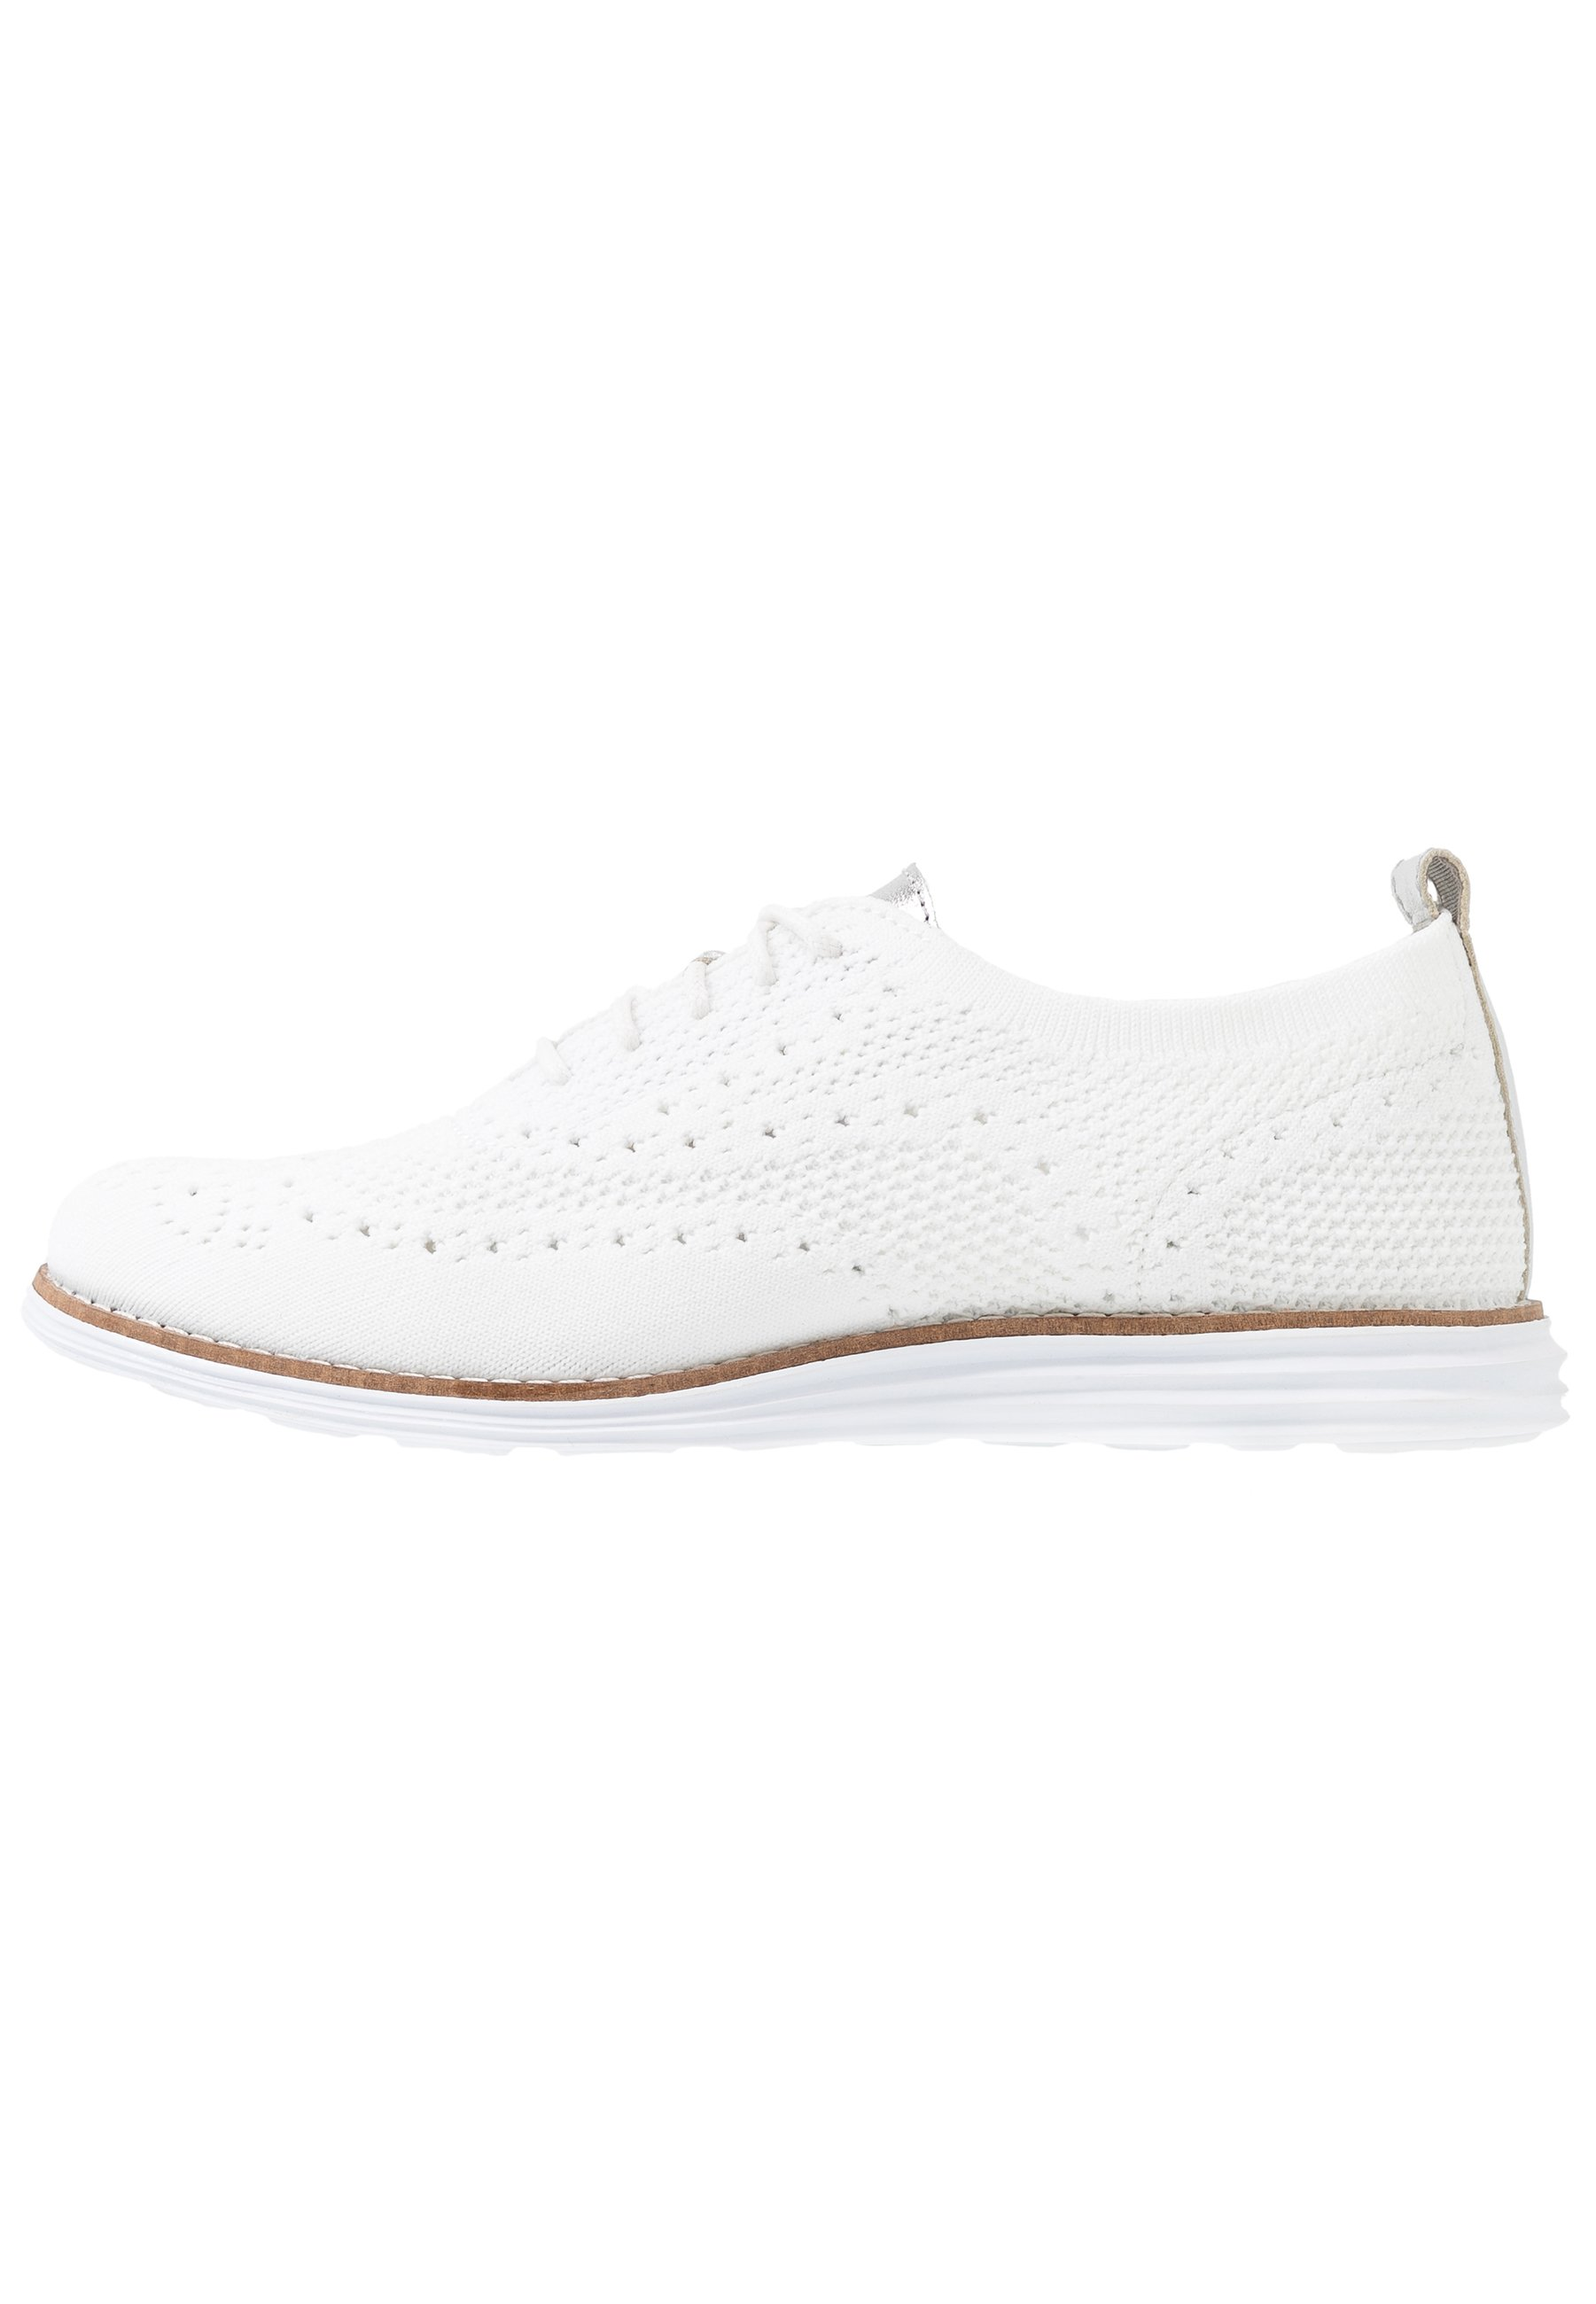 ORIGINALGRAND STITCHLITE WINGTIP OXFORD Sneakers optic white